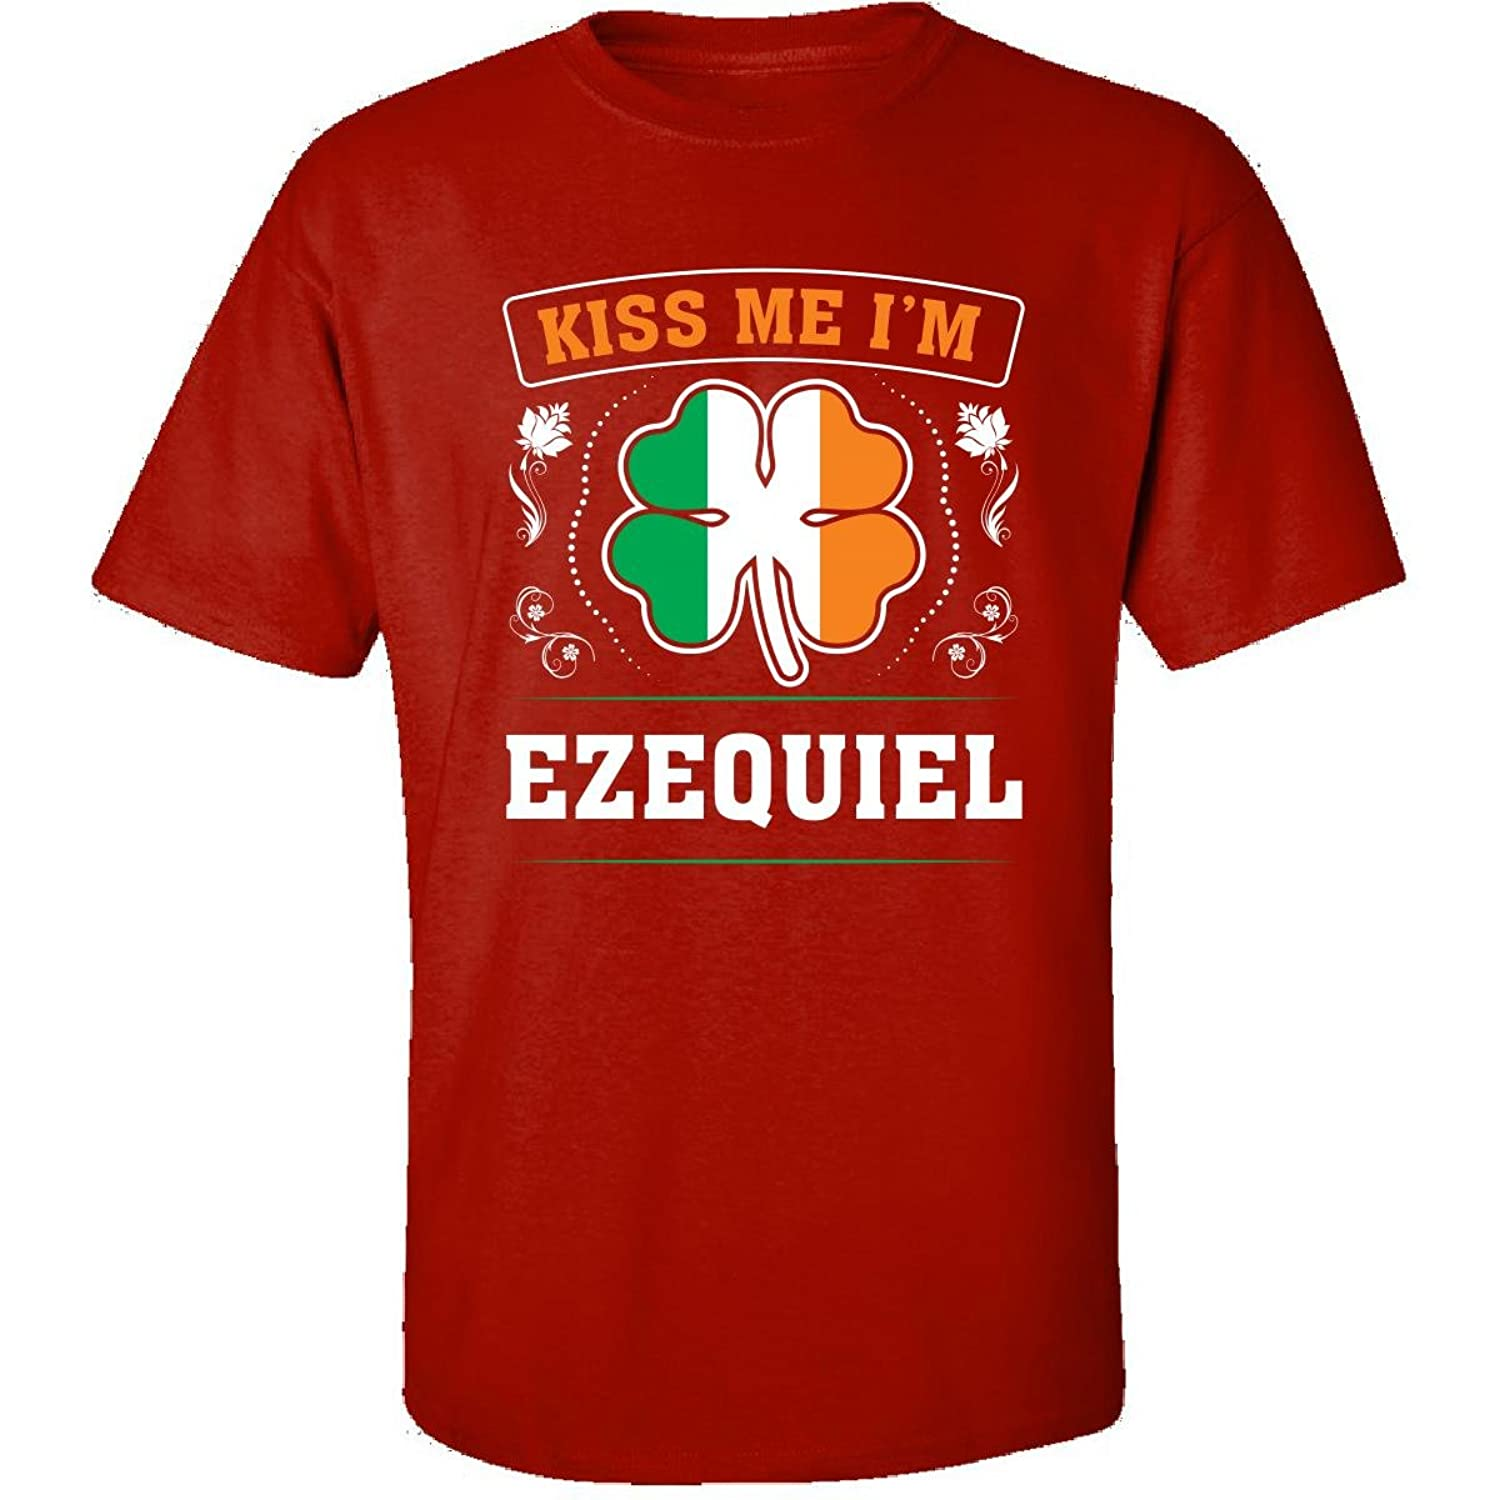 Kiss Me Im Ezequiel And Irish St Patricks Day Gift - Adult Shirt